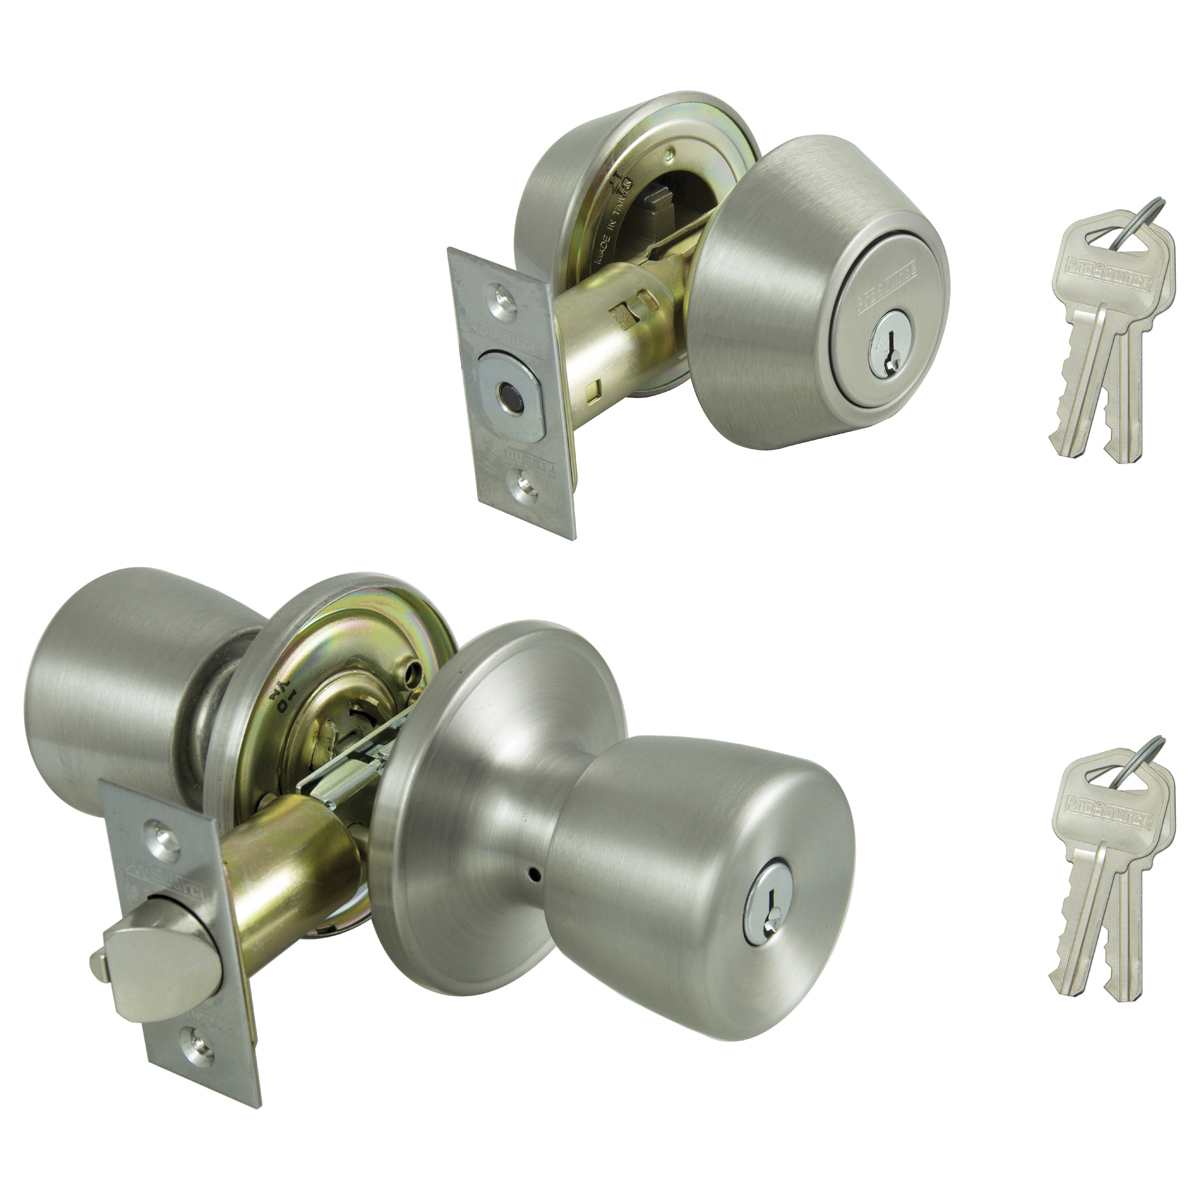 Picture of Prosource BS6B1-PS Deadbolt and Entry Lockset, Keyed Alike Key, 3 Grade, Brass